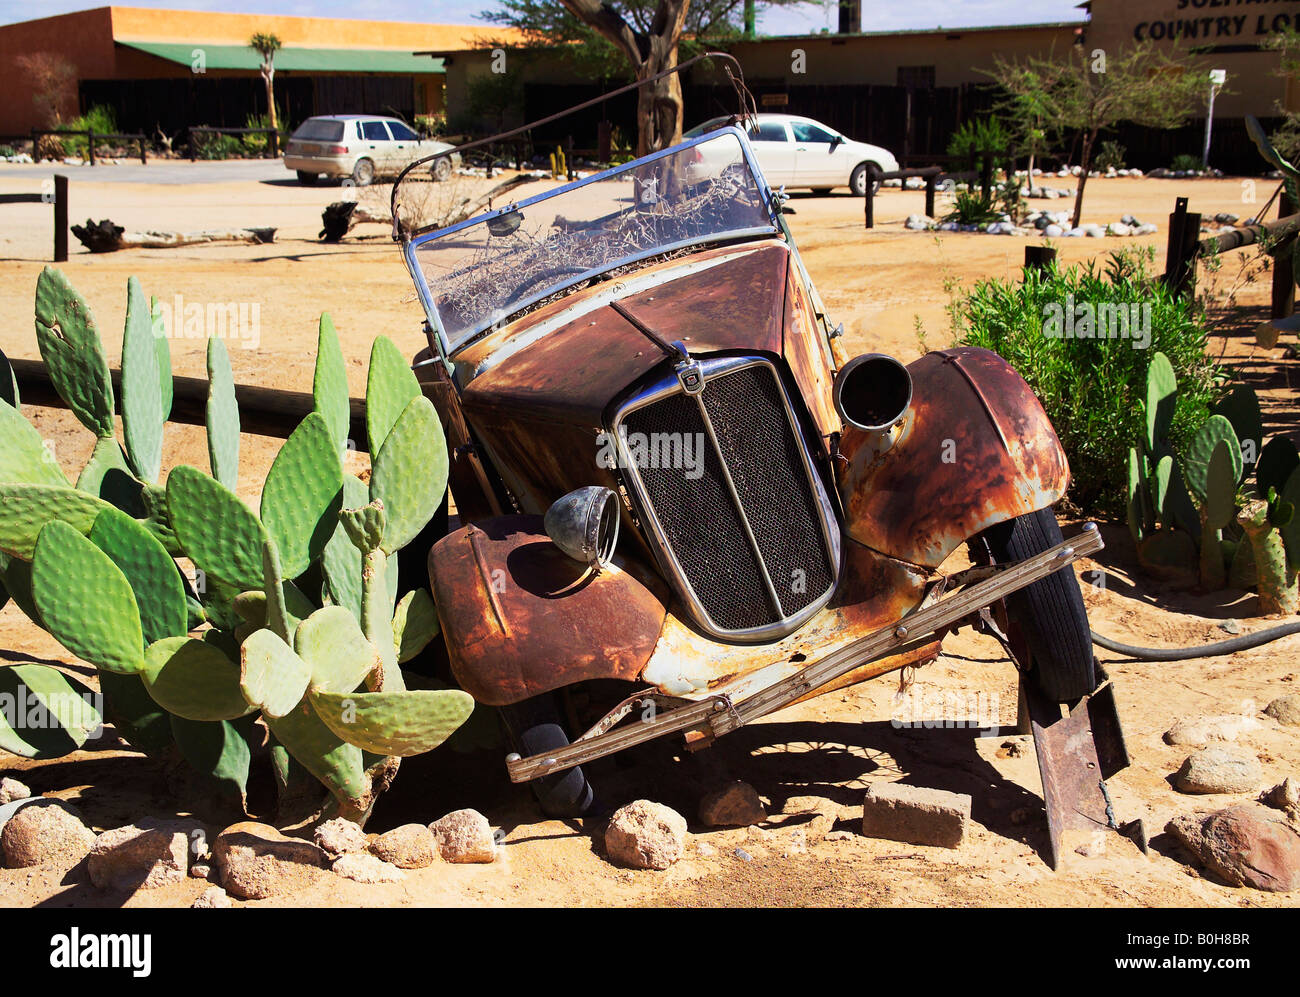 Junked Car Stock Photos & Junked Car Stock Images - Alamy